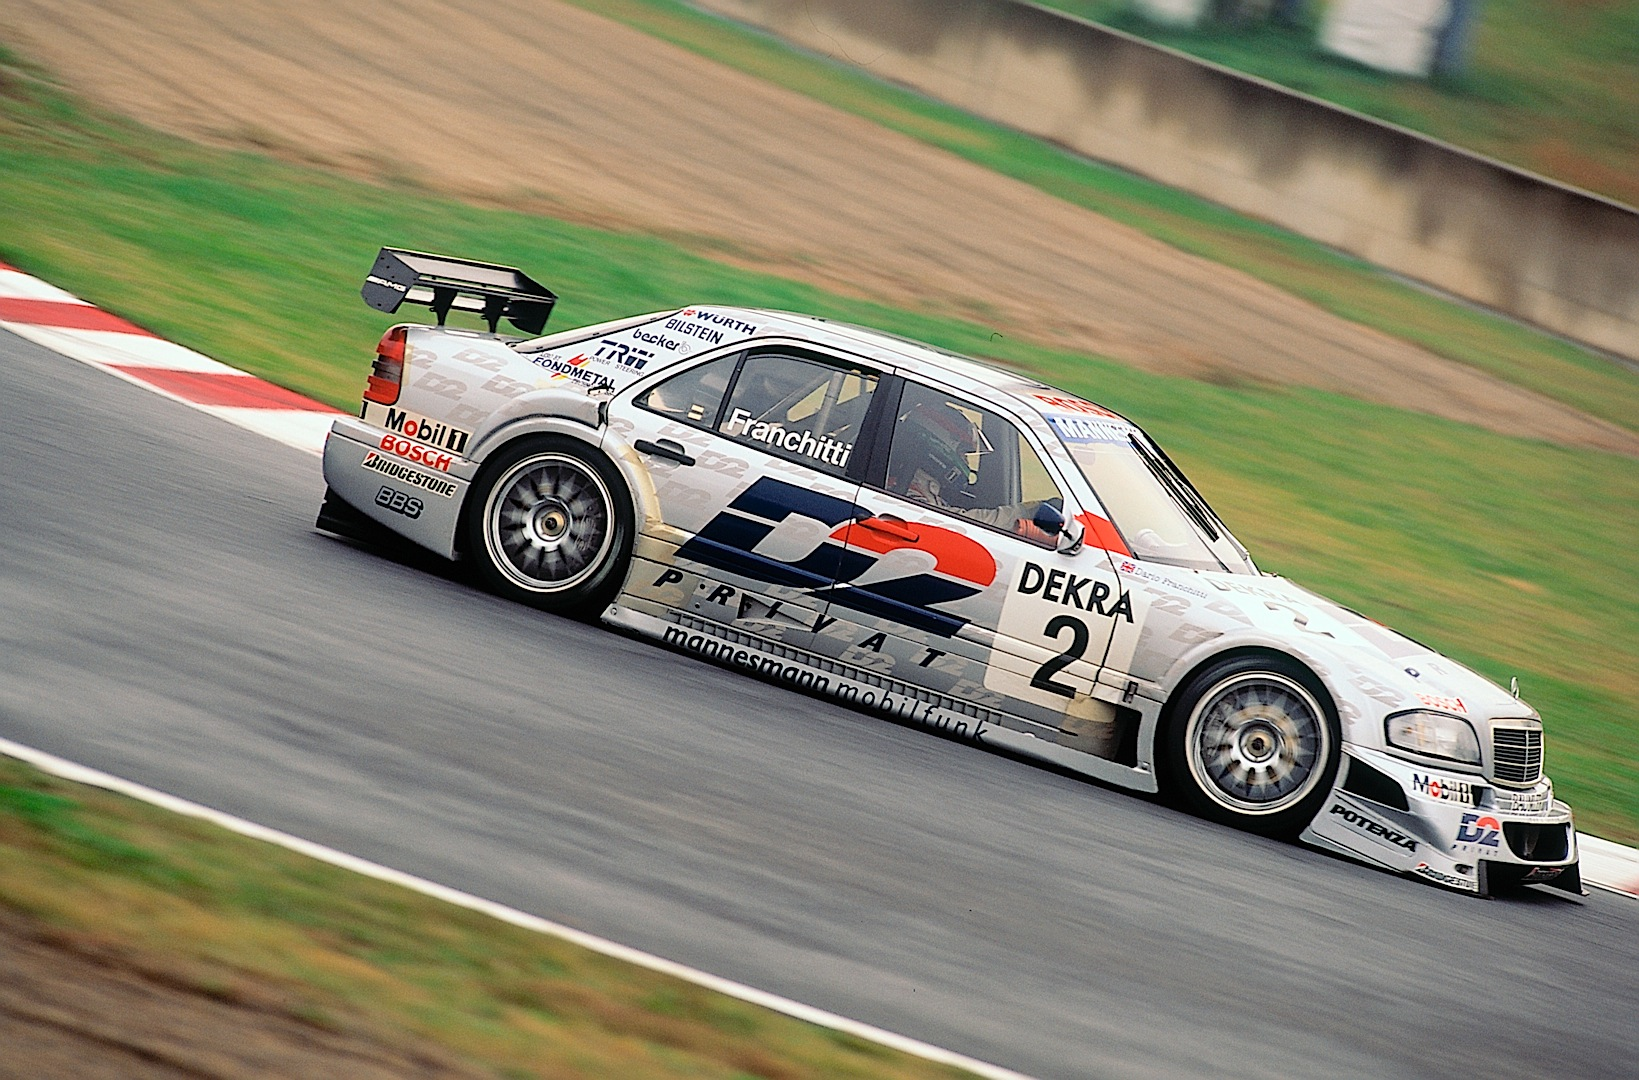 A Short History Of The Mercedes Benz C Class In Dtm